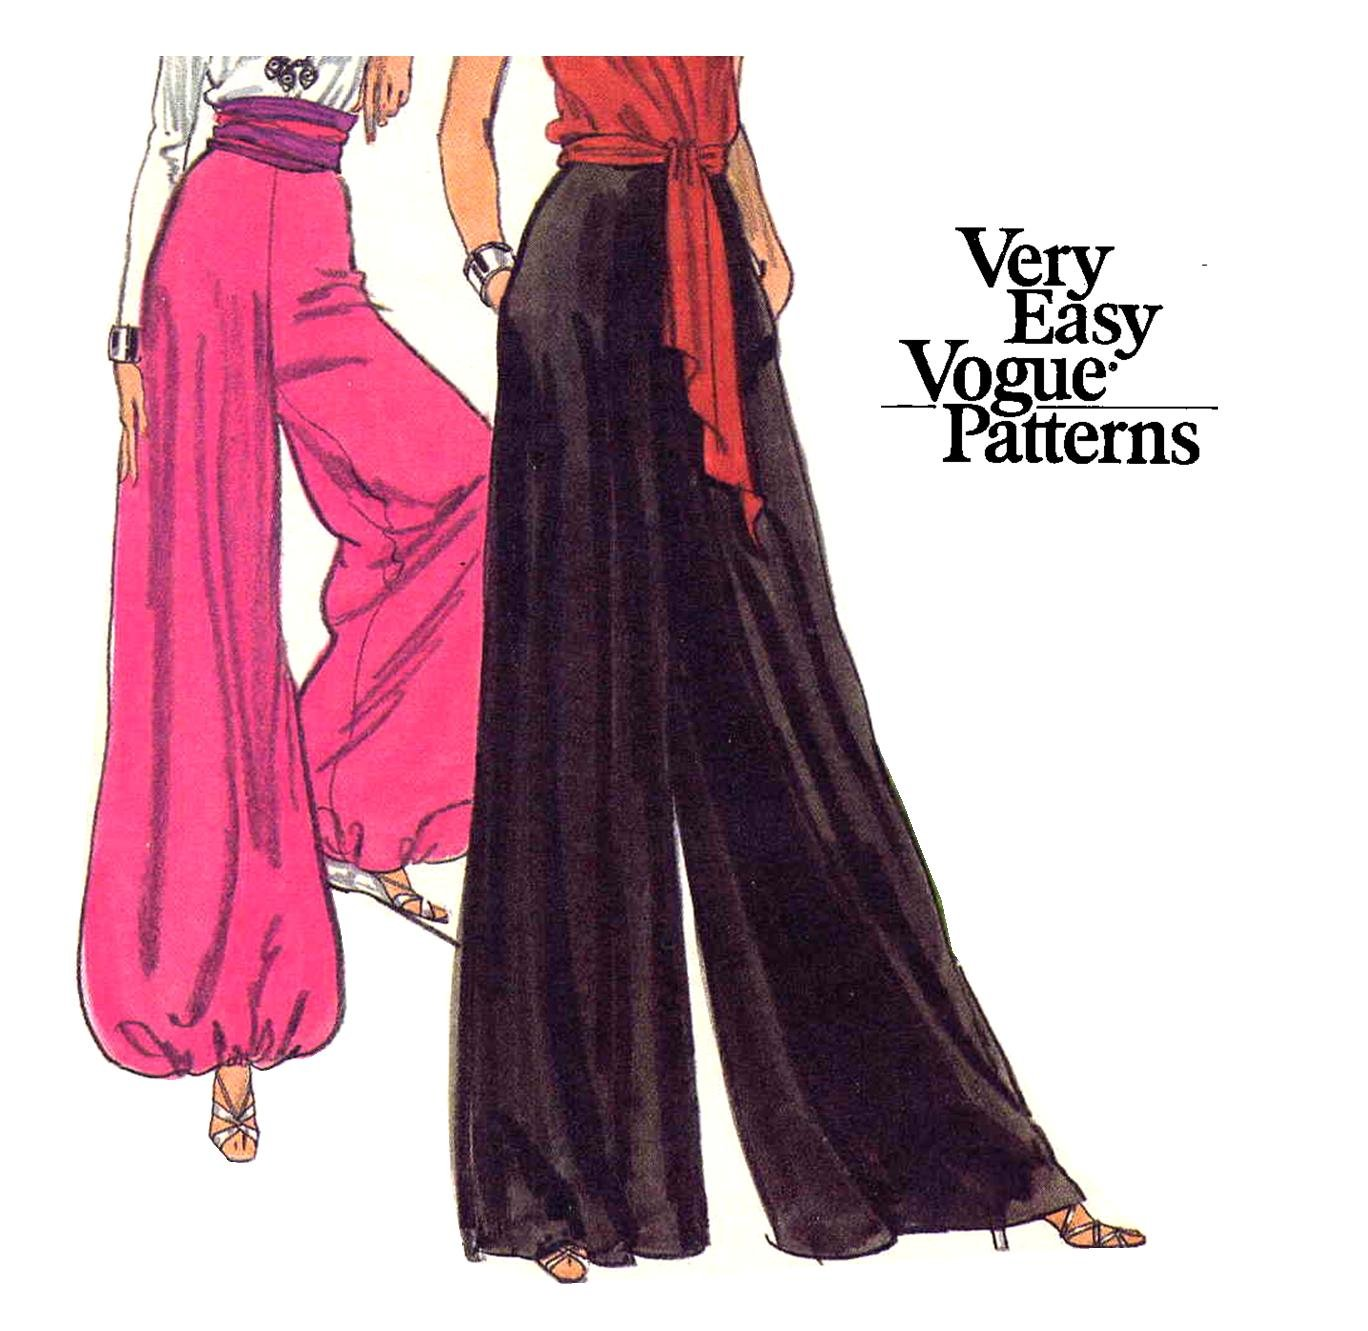 disco 70s vogue palazzo or harem pants and skirt vintage